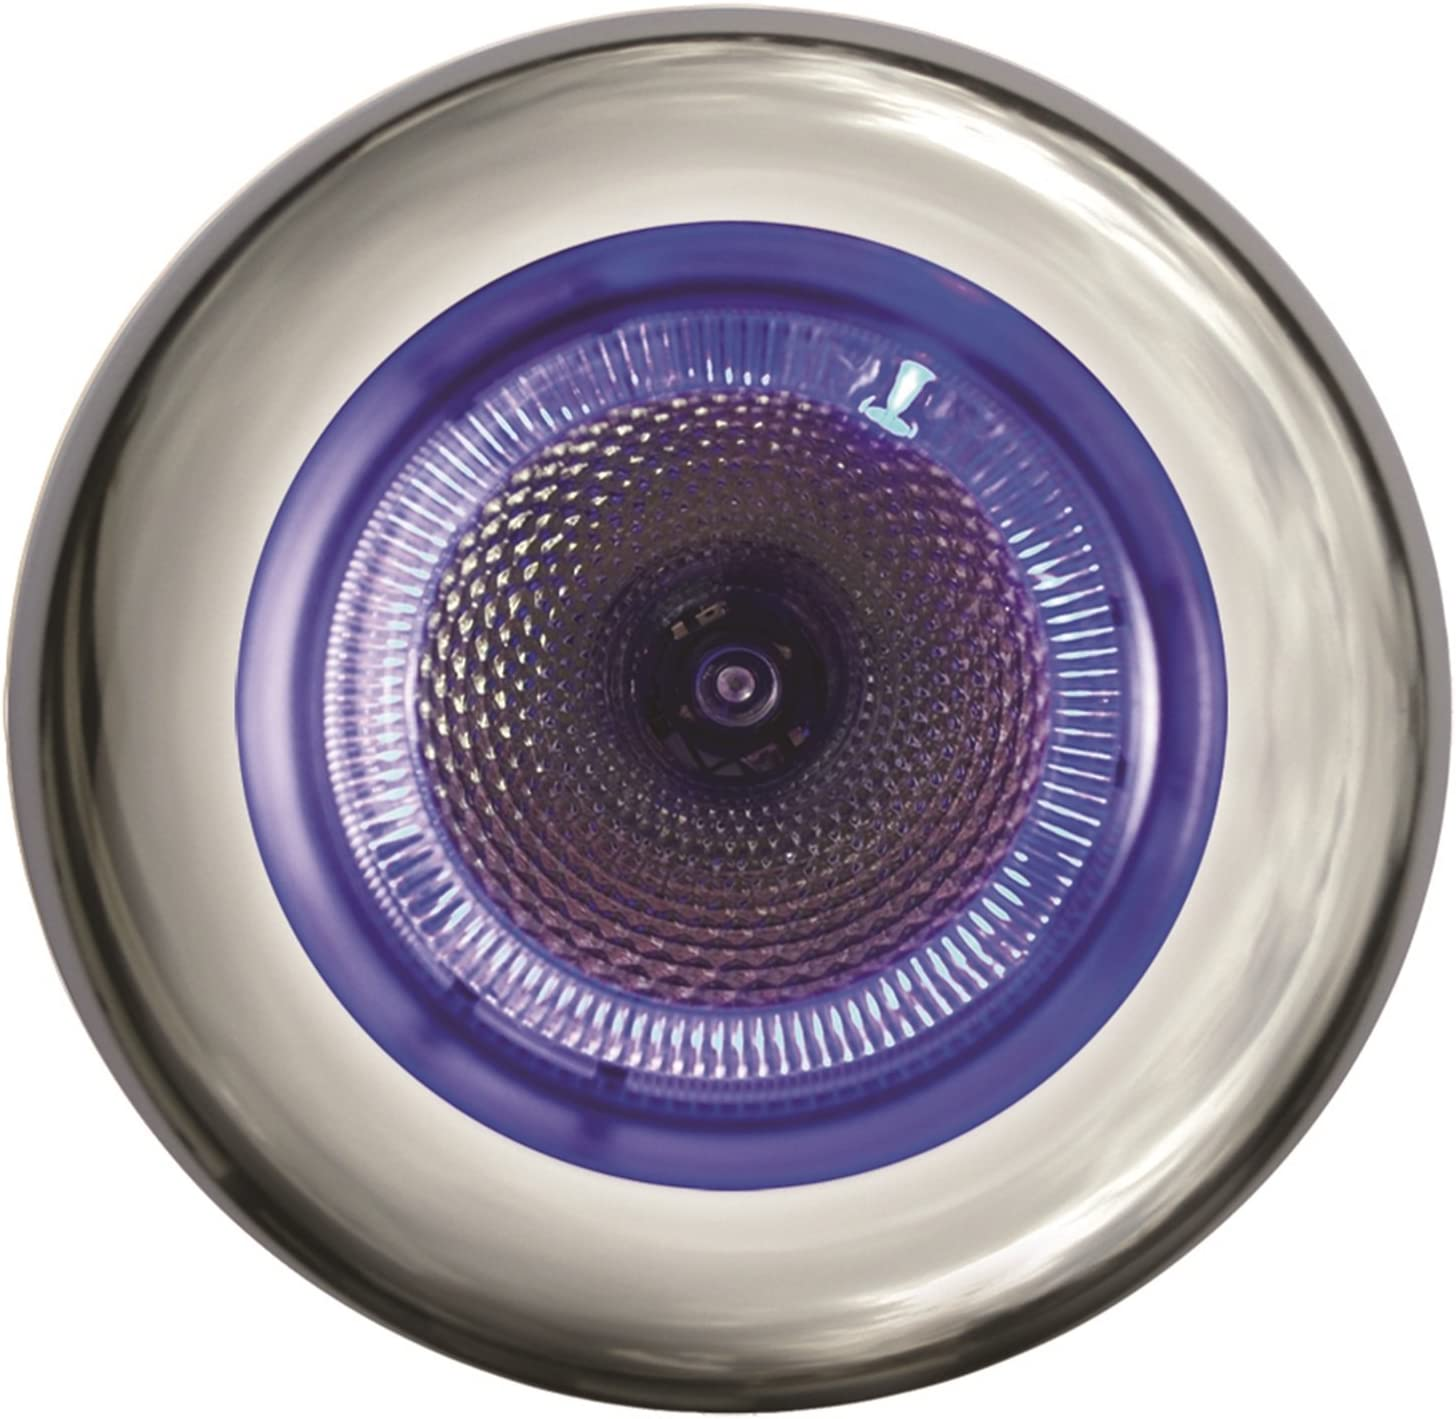 HELLA 343980152 3980 Series SpotLED Multivolt White 9-31V DC Dual Color LED Interior Light with Blue Ambient Light Ring and Stainless Steel Rim